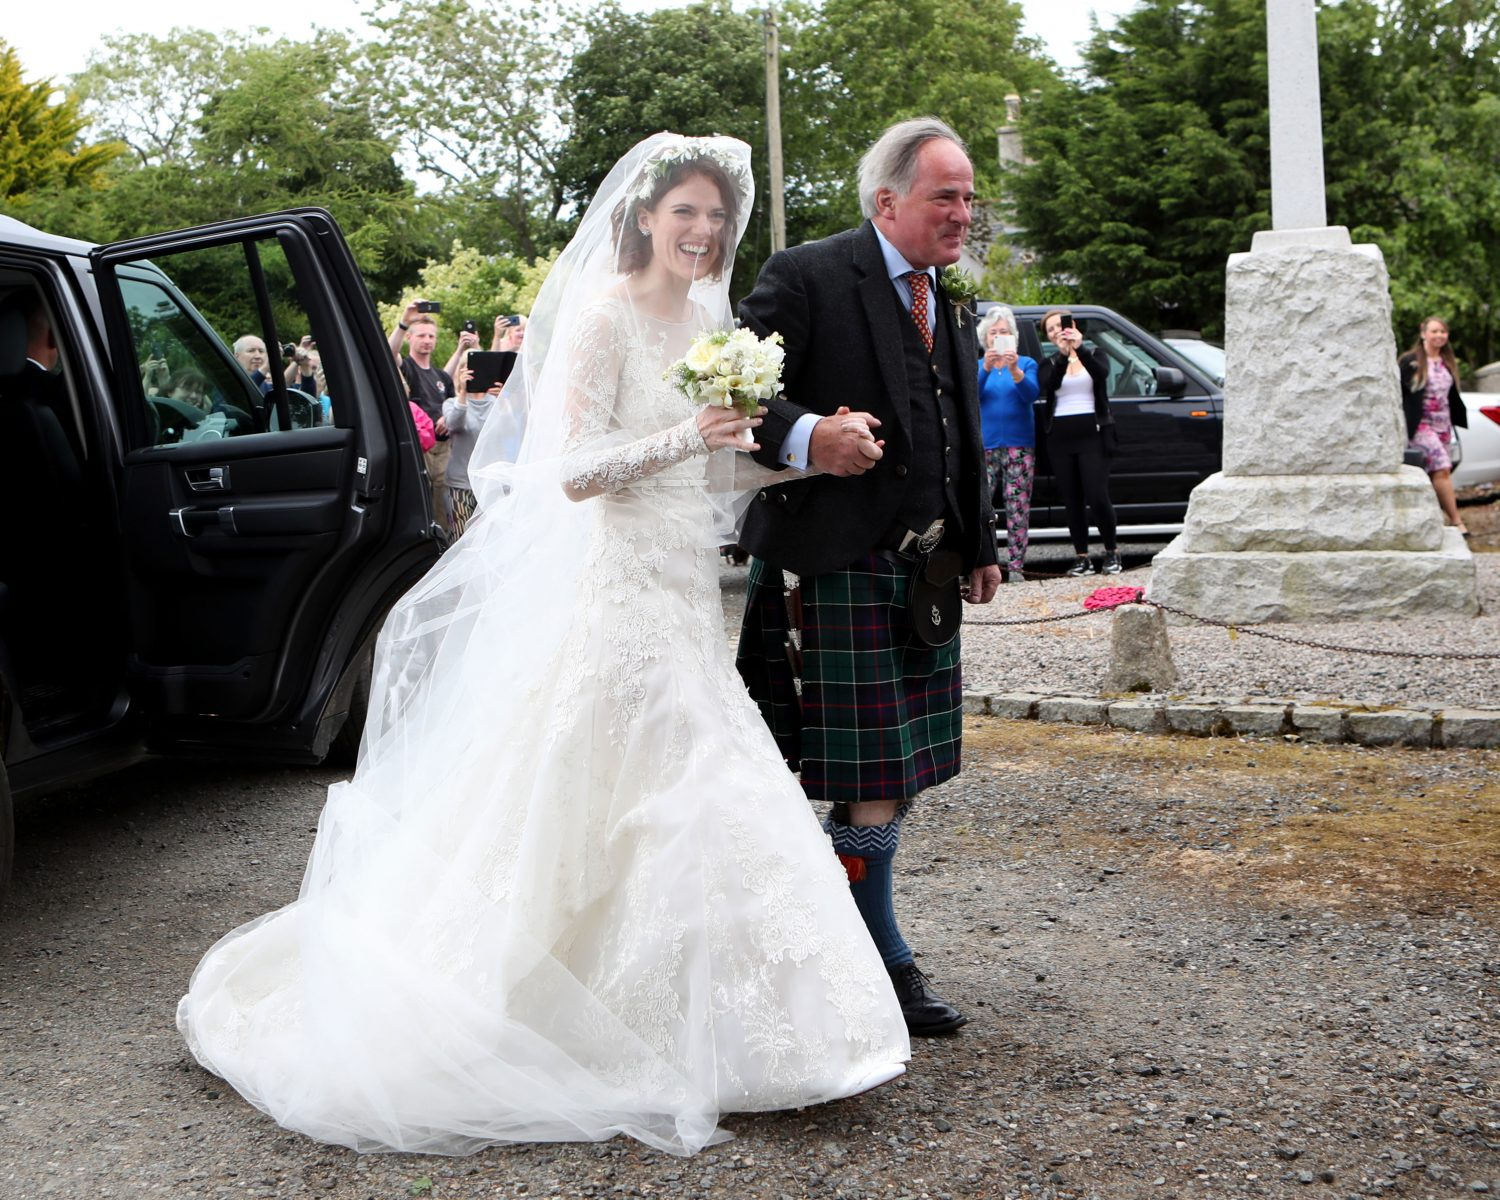 Game Of Thrones Rose Leslie Wears Lace Wedding Dress As She Marries